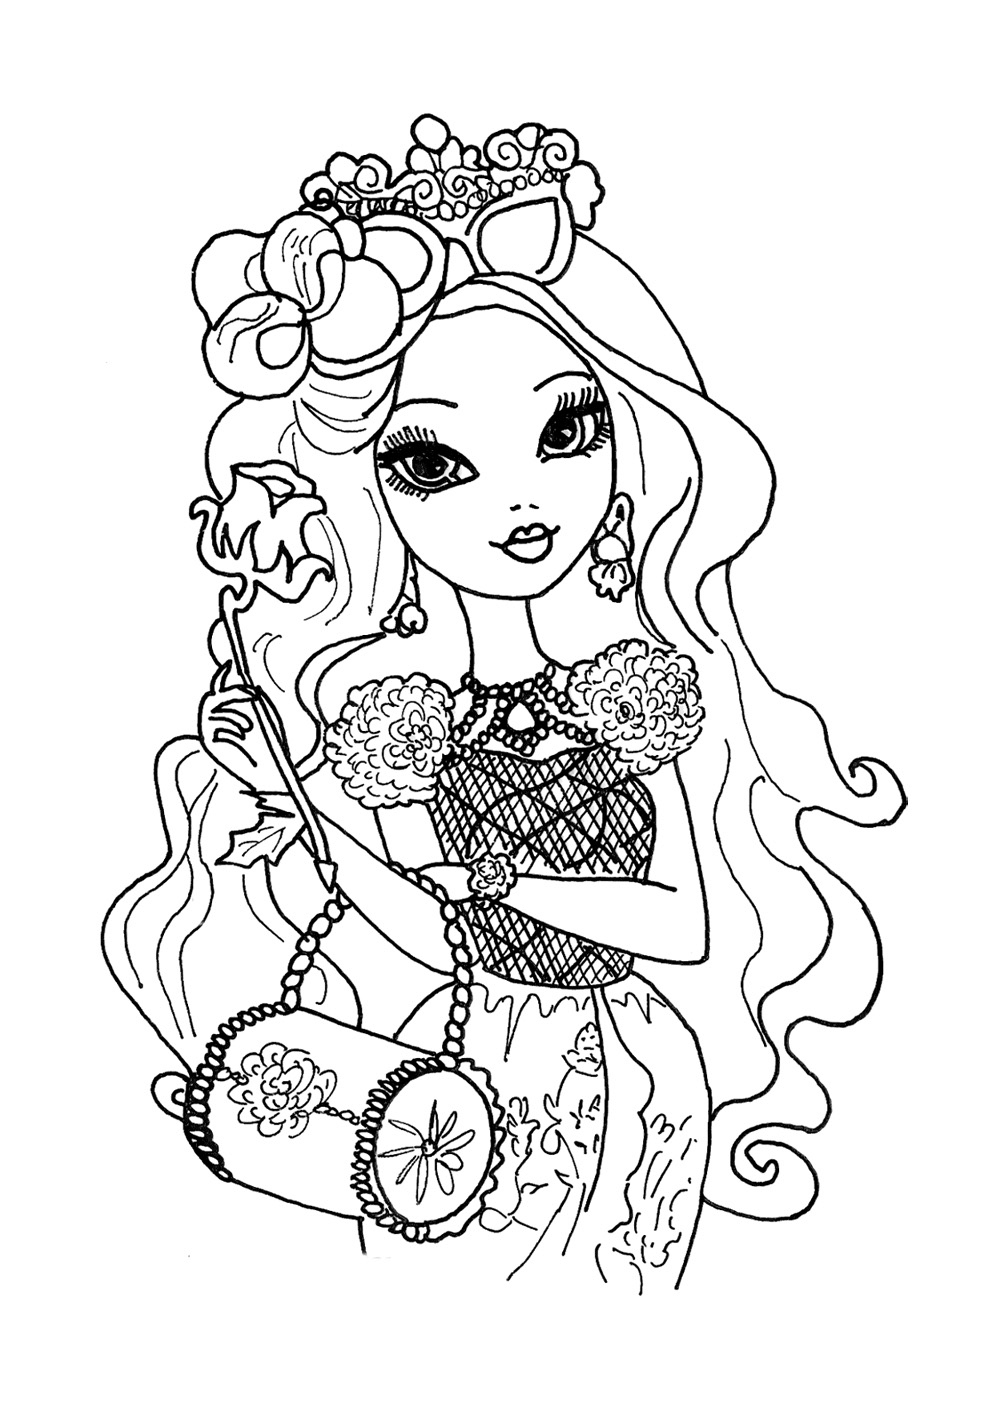 coloring sheets free online ever after high coloring pages to download and print for free sheets online free coloring